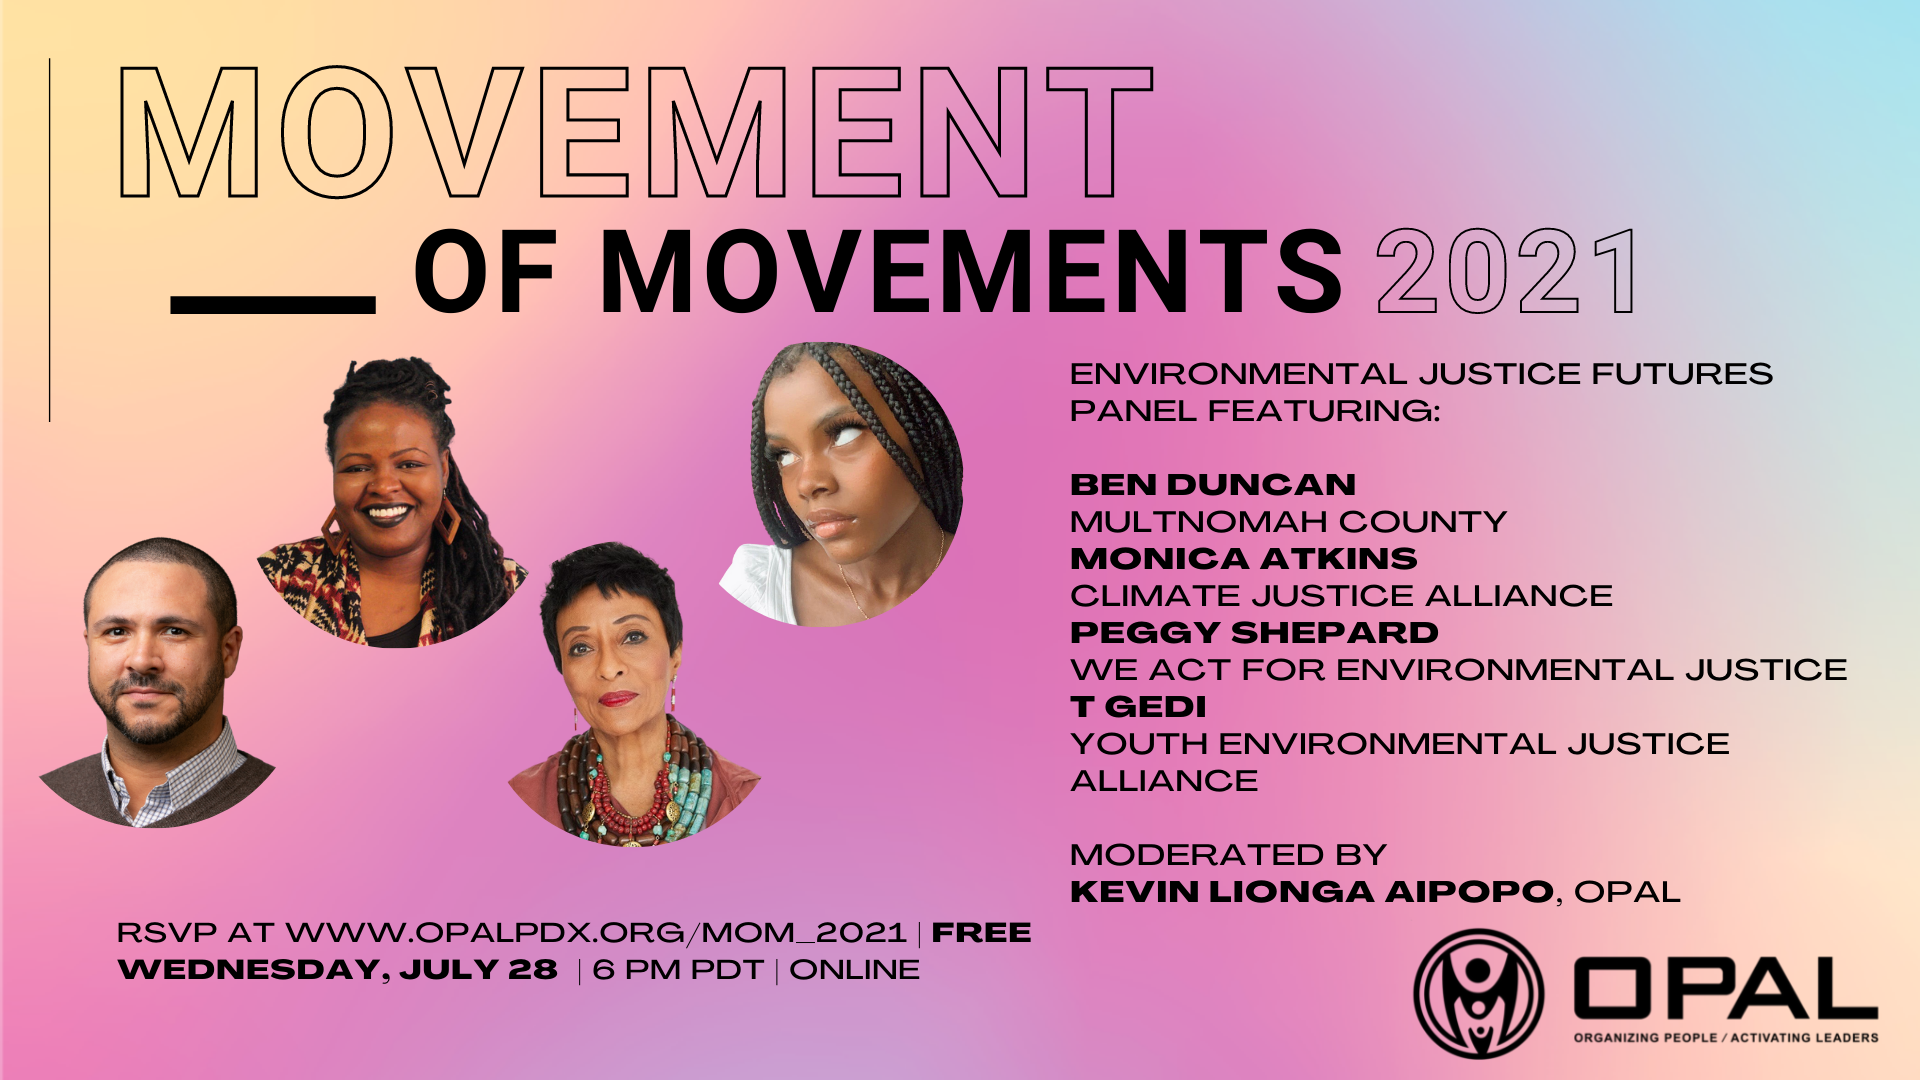 Movement of Movements event banner for environmental justice futures panel featuring Ben Duncan of Multnomah County, Peggy Shepard of We Act for Environmental Justice, Monica Atkins of Climate Justice Alliance, and T Gedi of the Youth Environmental Justice Alliance